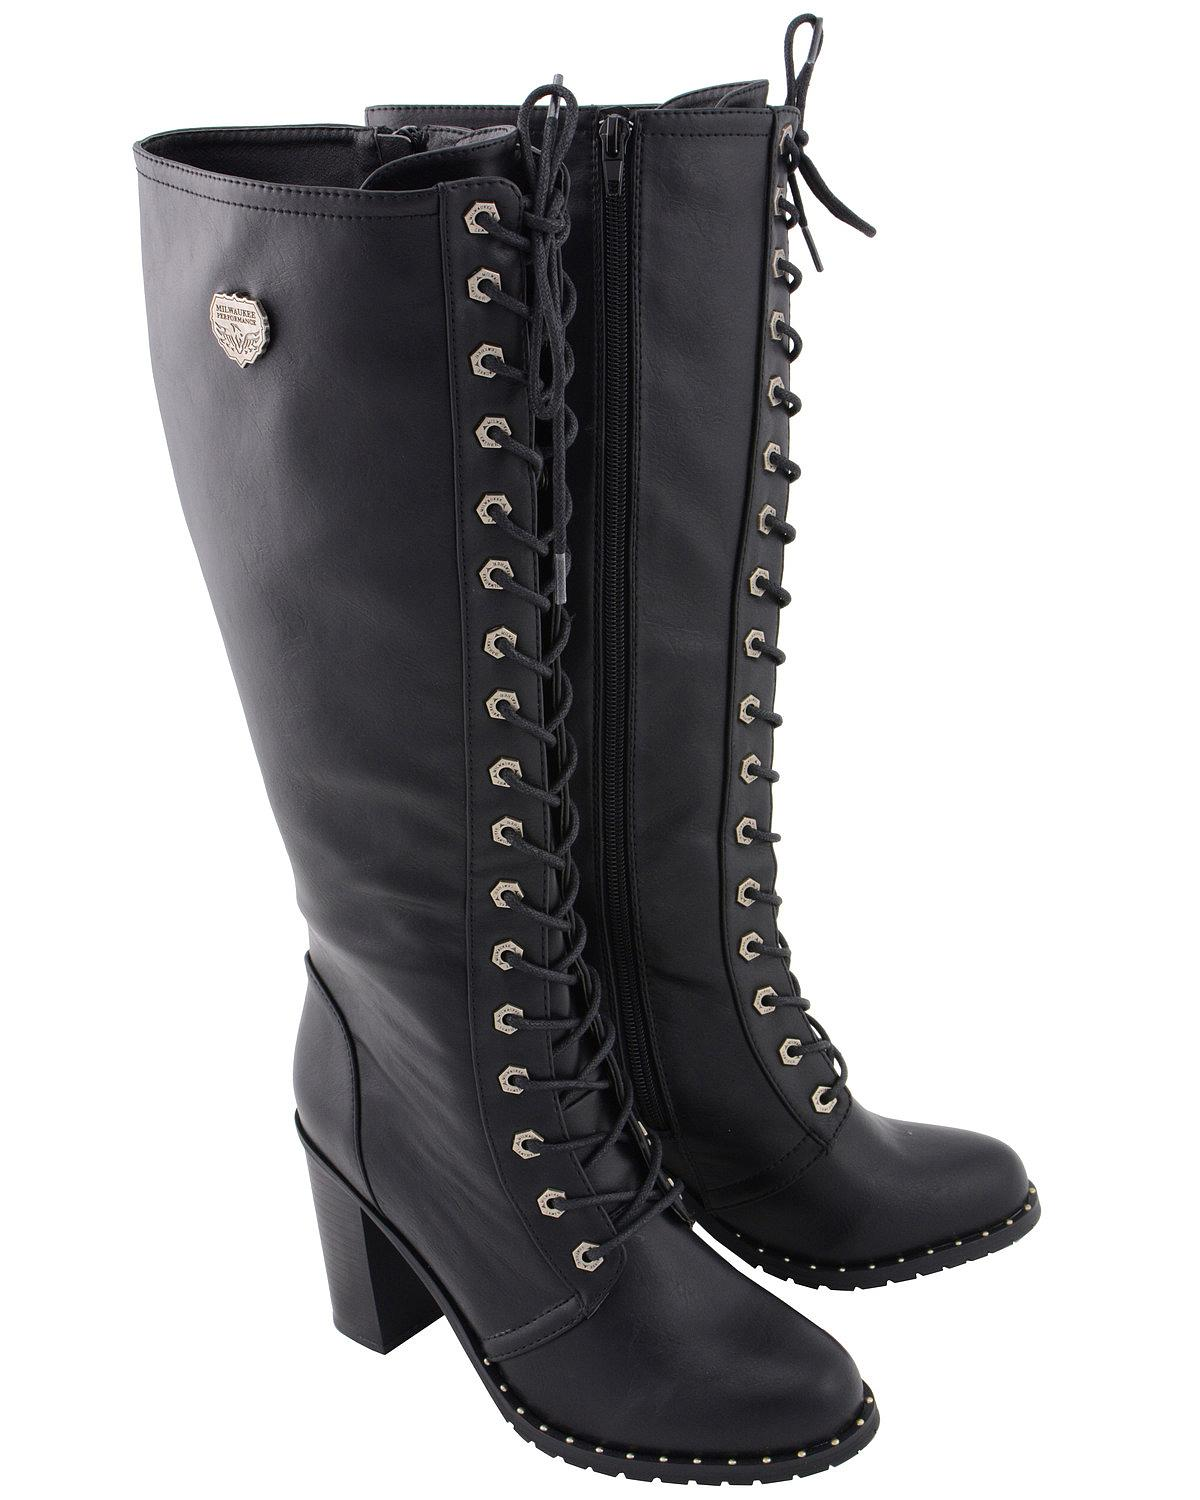 Milwaukee Leather Women/'s Lace Up Buckle Boot MBL9310